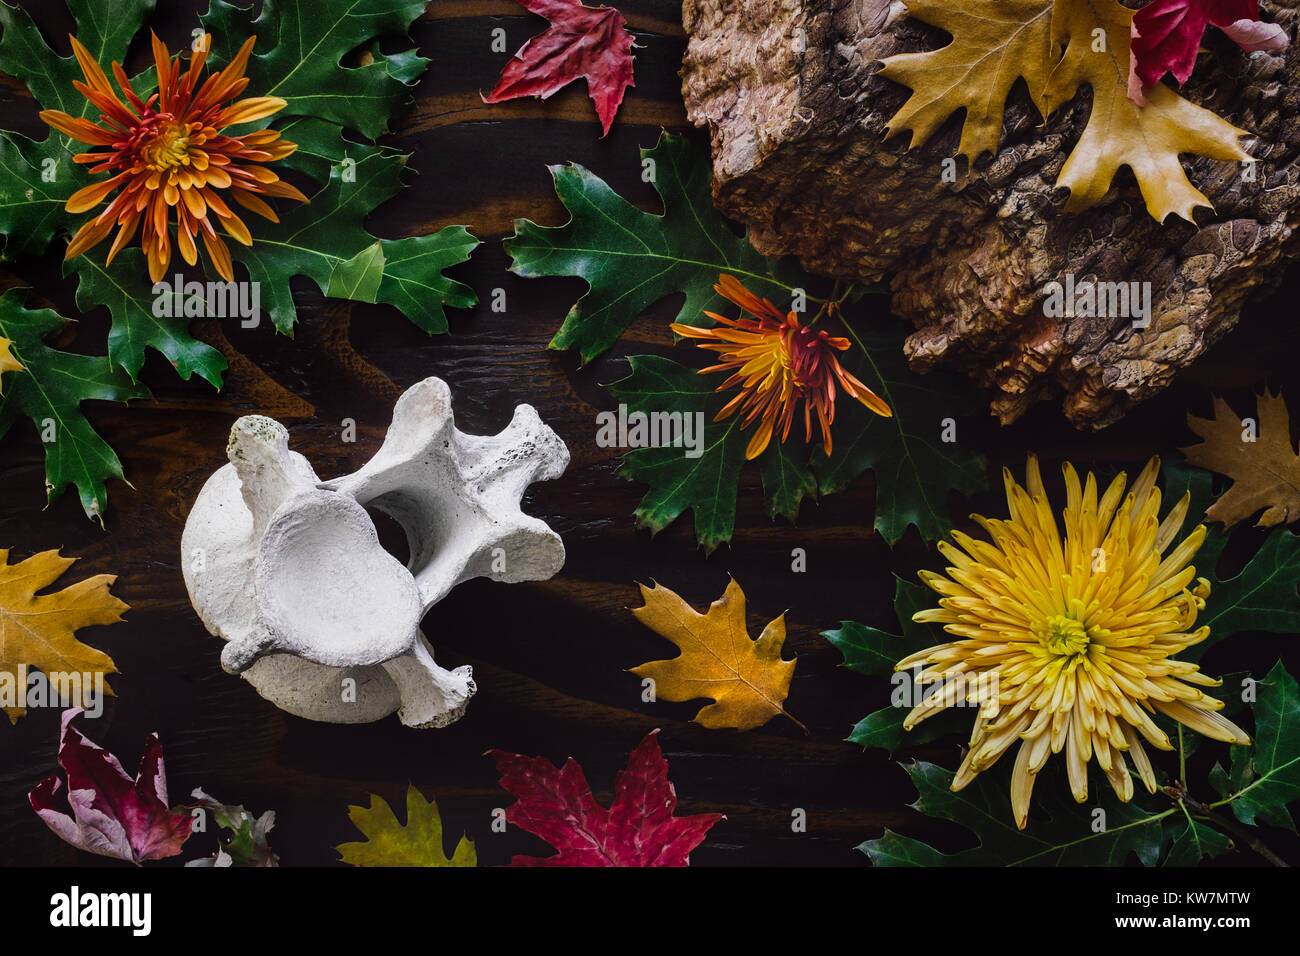 A Collection of Fallen Leaves, Bark, Chrysanthemum and Animal Vertibrae - Stock Image